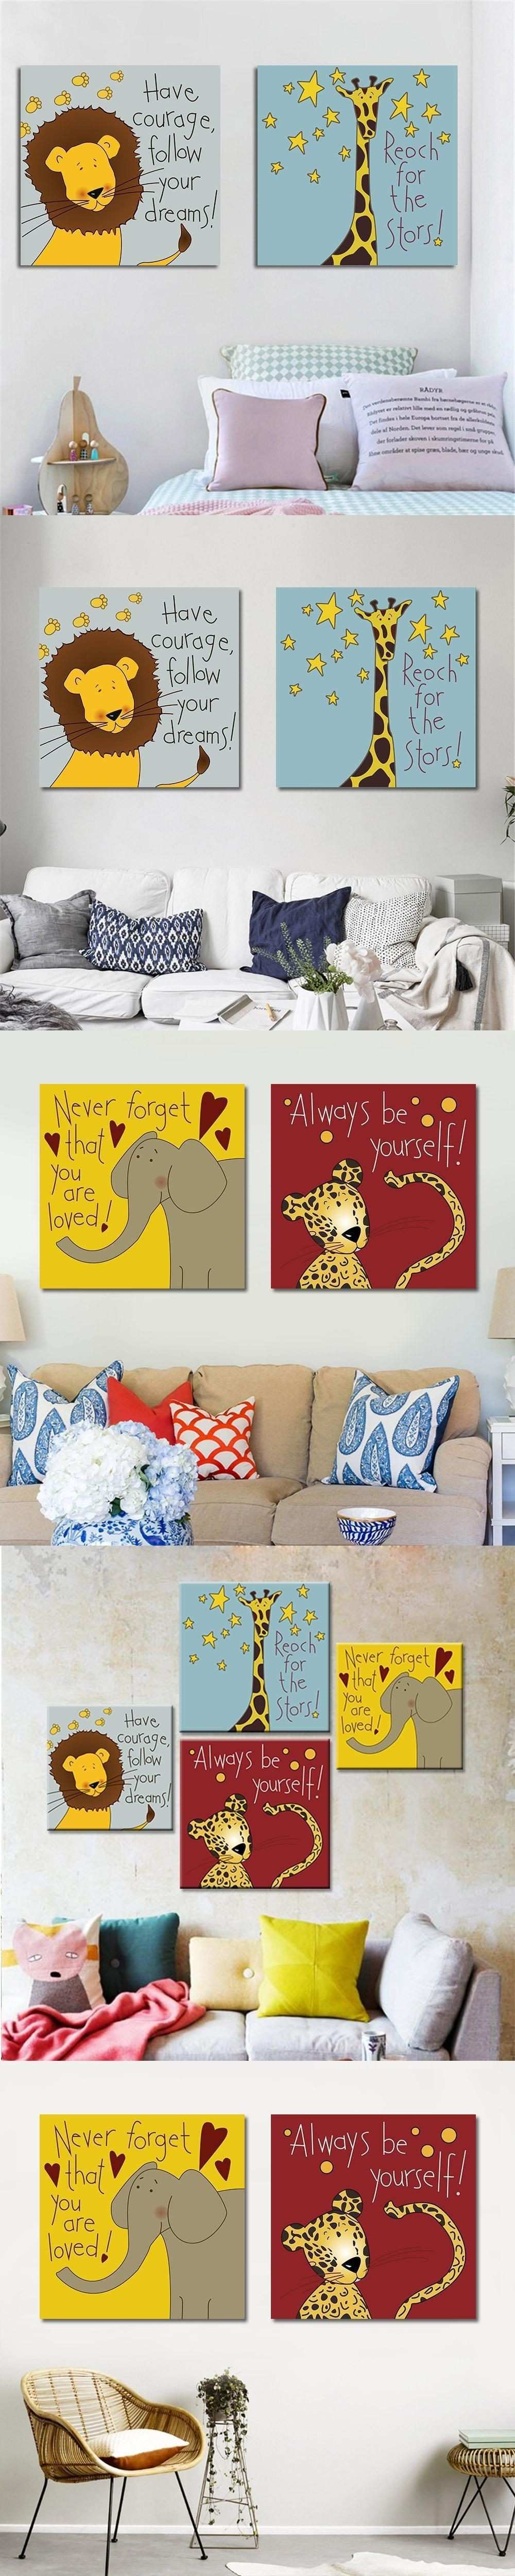 Prepossessing Wall Decor Ideas For Bedroom At Wall Decals For